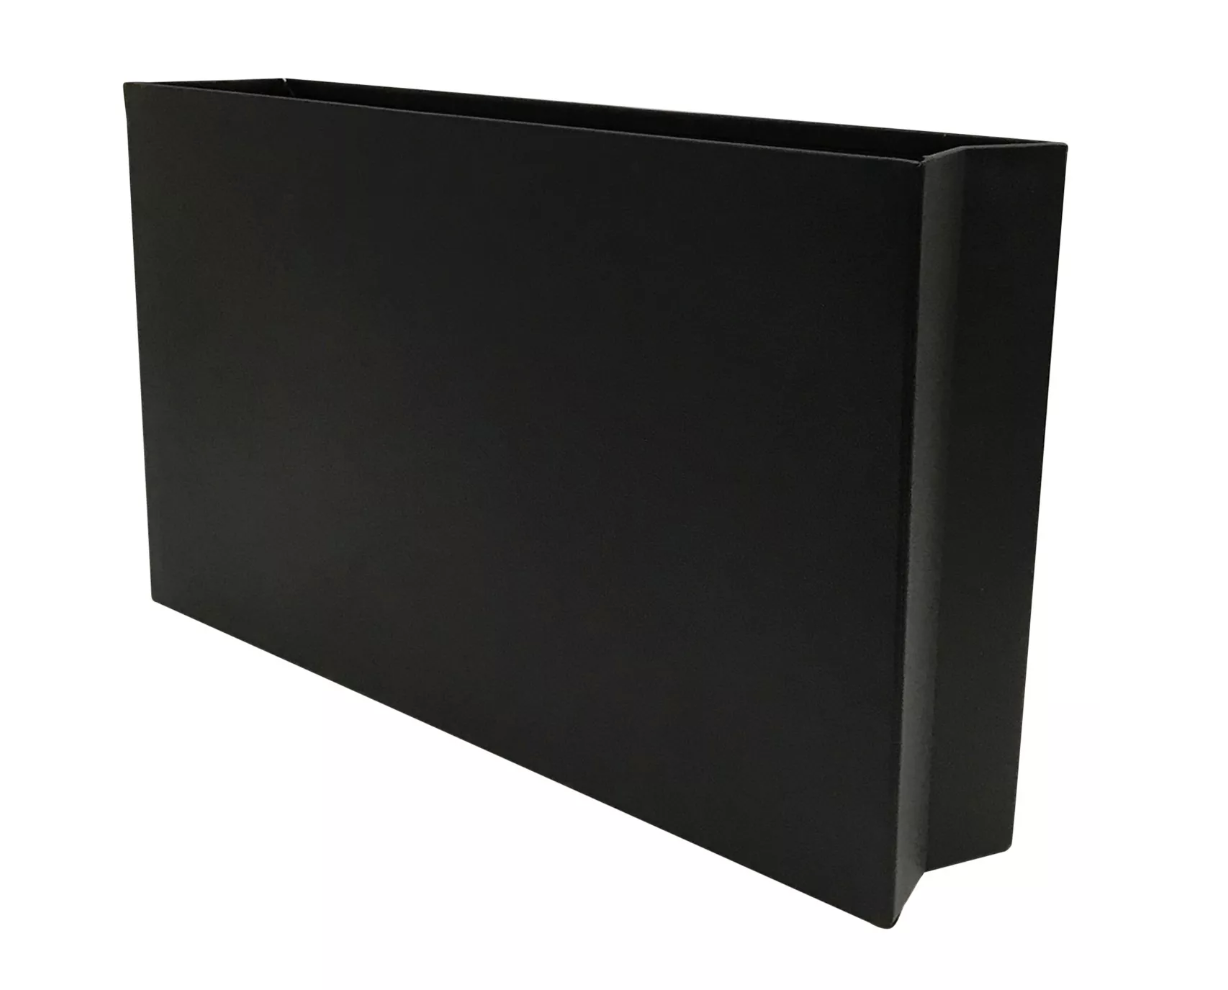 "Project 62 Metal Wall Pocket Black$15 - ""Files are a necessary evil but the storage of files doesn't necessarily have to be ugly. This chic metal holder will keep your files, catalogs, magazines or what-not hidden but within easy reach. The ever so subtly creased corners are reminiscent of a brown paper bag... lunch anyone?"""